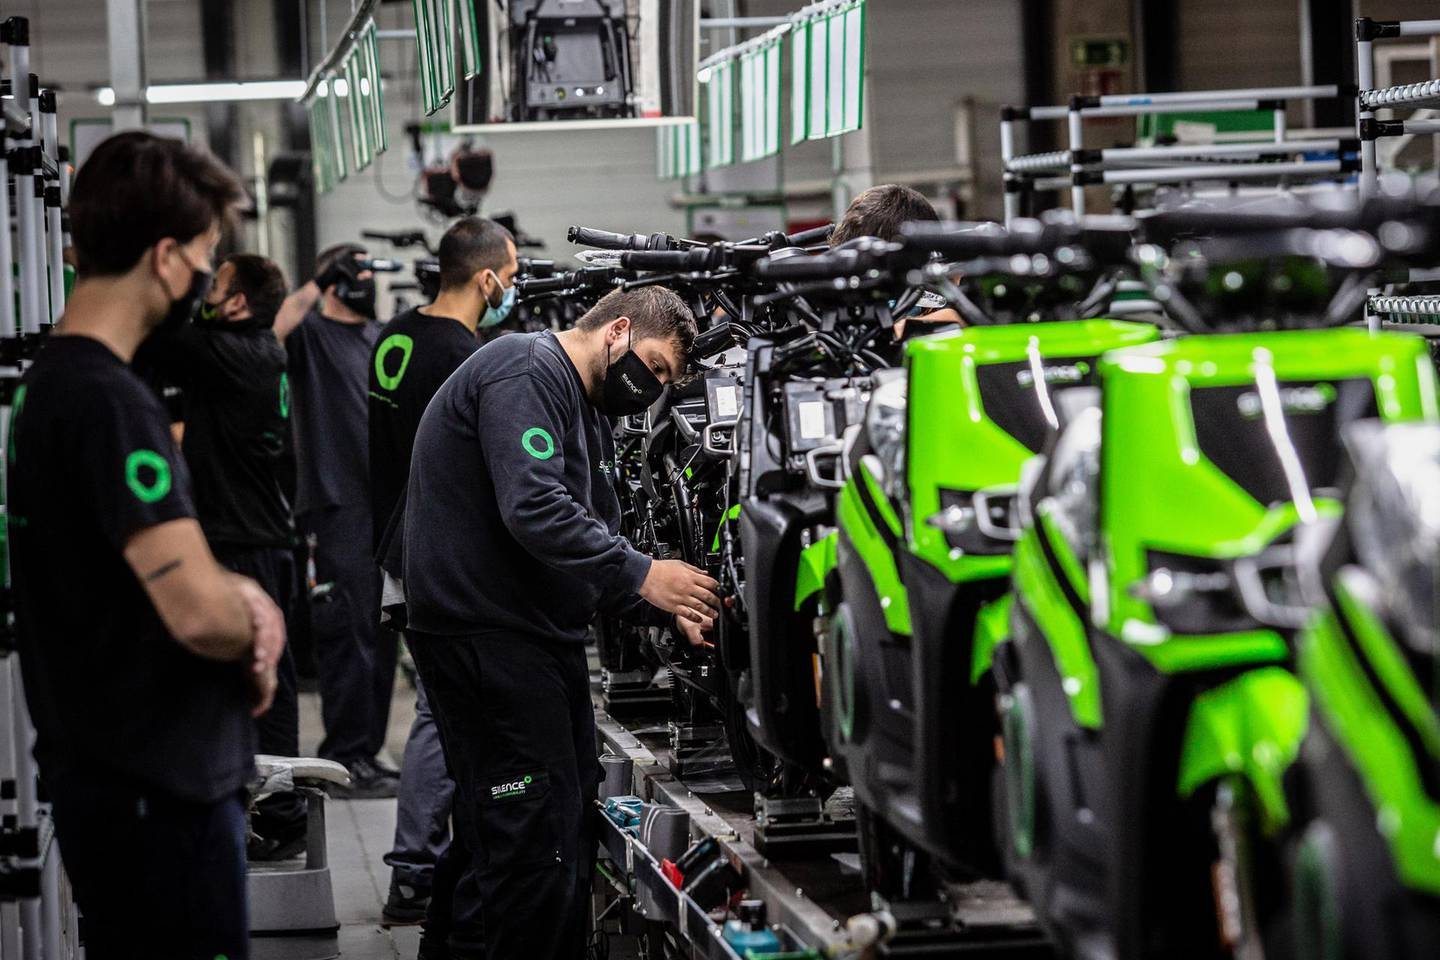 Workers install components onto S02 electric motorcycles on the assembly line at the Silence Urban Ecomobility plant in the Sant Boi de Llobregat district of Barcelona, Spain, on Wednesday, April 29, 2021. Spain plans to invest 13.2 billion euros ($15.7 billion) to boost electric vehicle use, one of a raft of measures as the government prepares to deploy European Union pandemic recovery funds to modernize the economy, Prime MinisterPedro Sanchezsaid. Photographer: Angel Garcia/Bloomberg